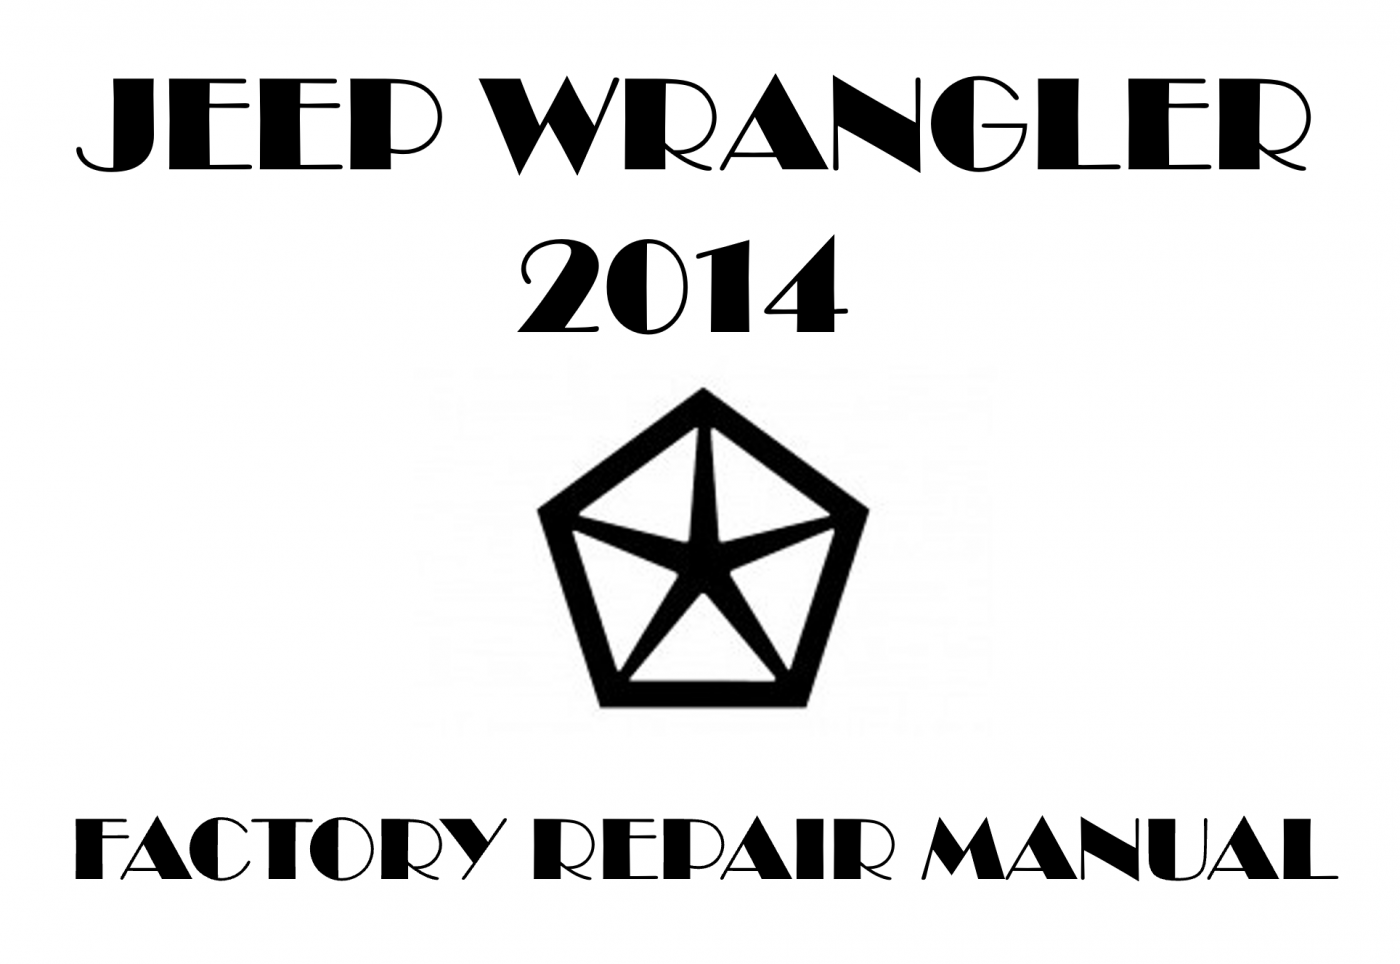 2014 Jeep Wrangler repair manual